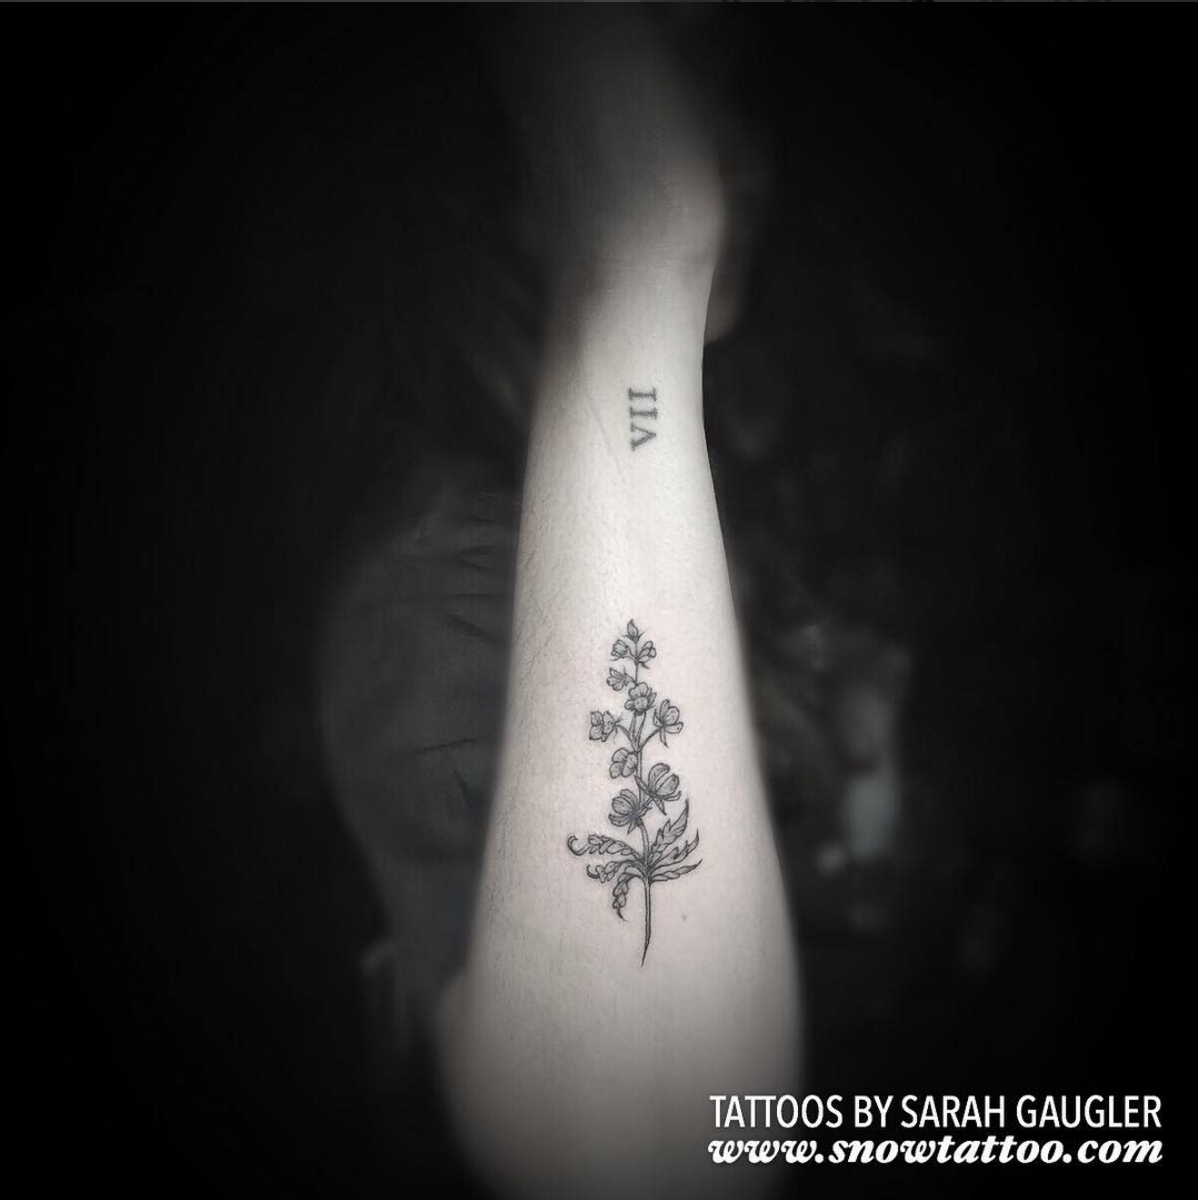 Sarah Gaugler Snow Tattoo Custom Floral  New York Best Tattoos Best Tattoo Artist NYC.png